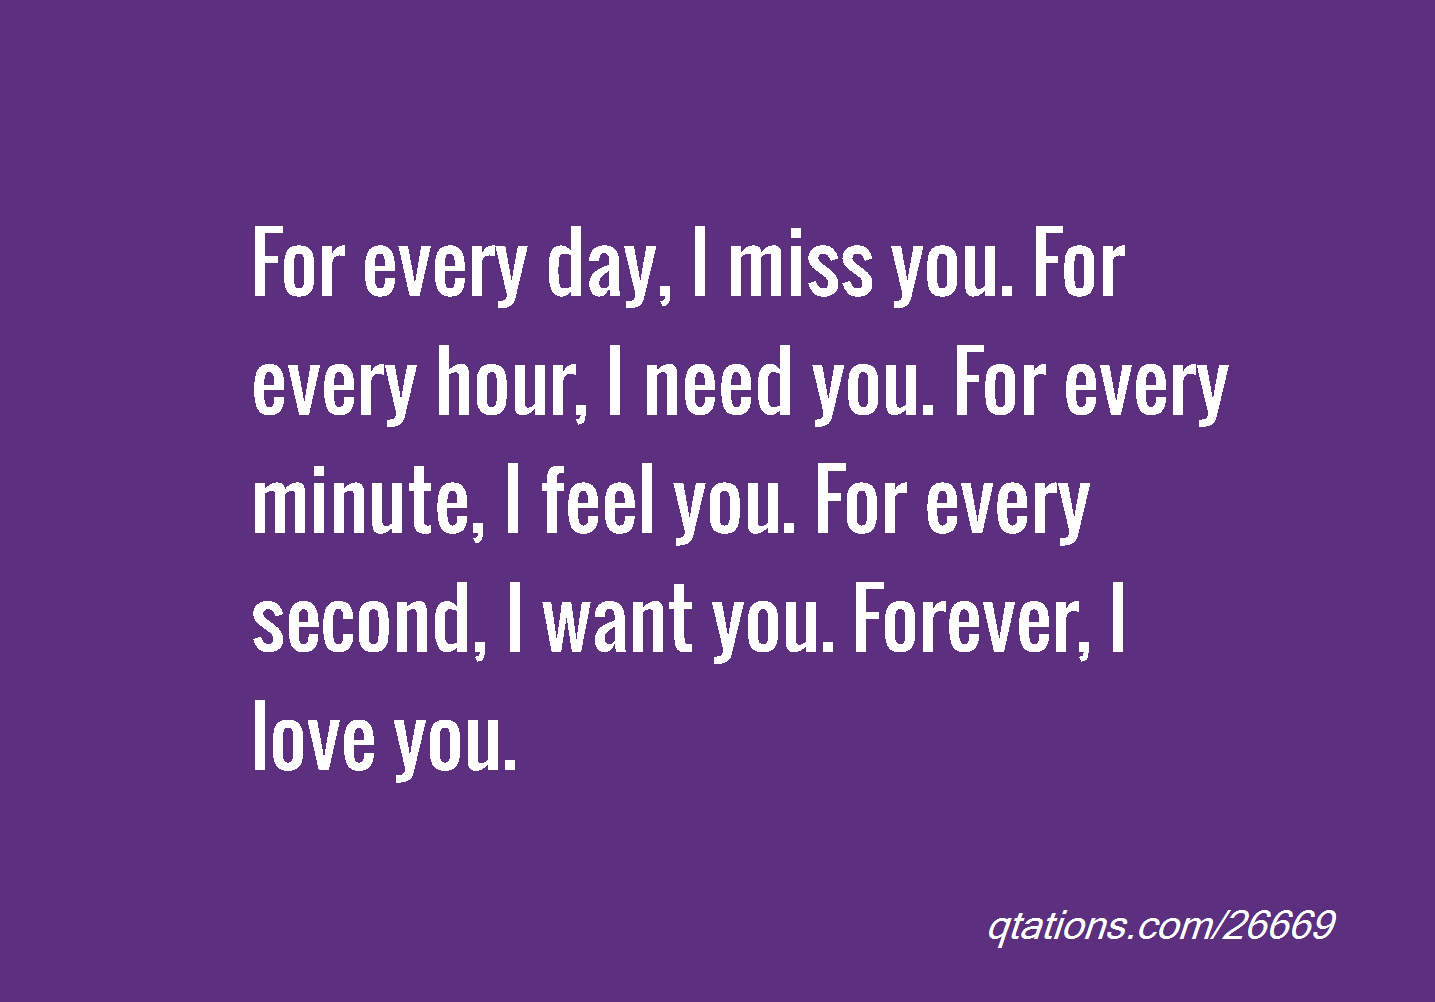 I Love N Miss You Quotes : So i love you quotes and sayings for him. Do not forget tokeep good ...